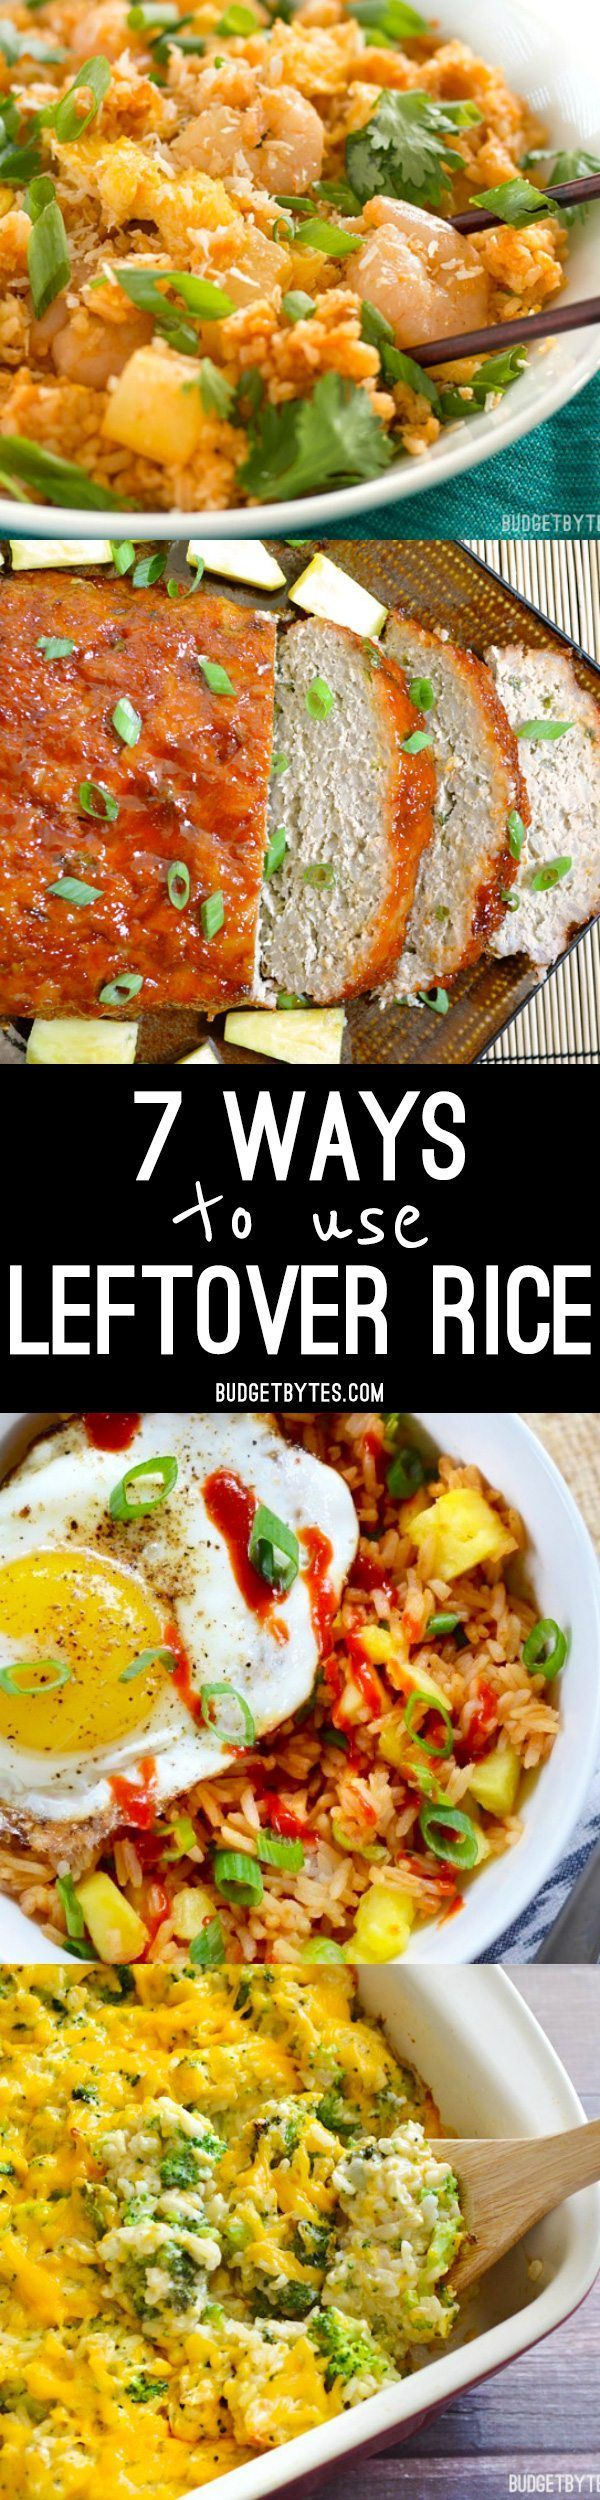 Got leftover rice? Make sure it doesn't go to waste by using one of these 7 ways to use leftover rice.